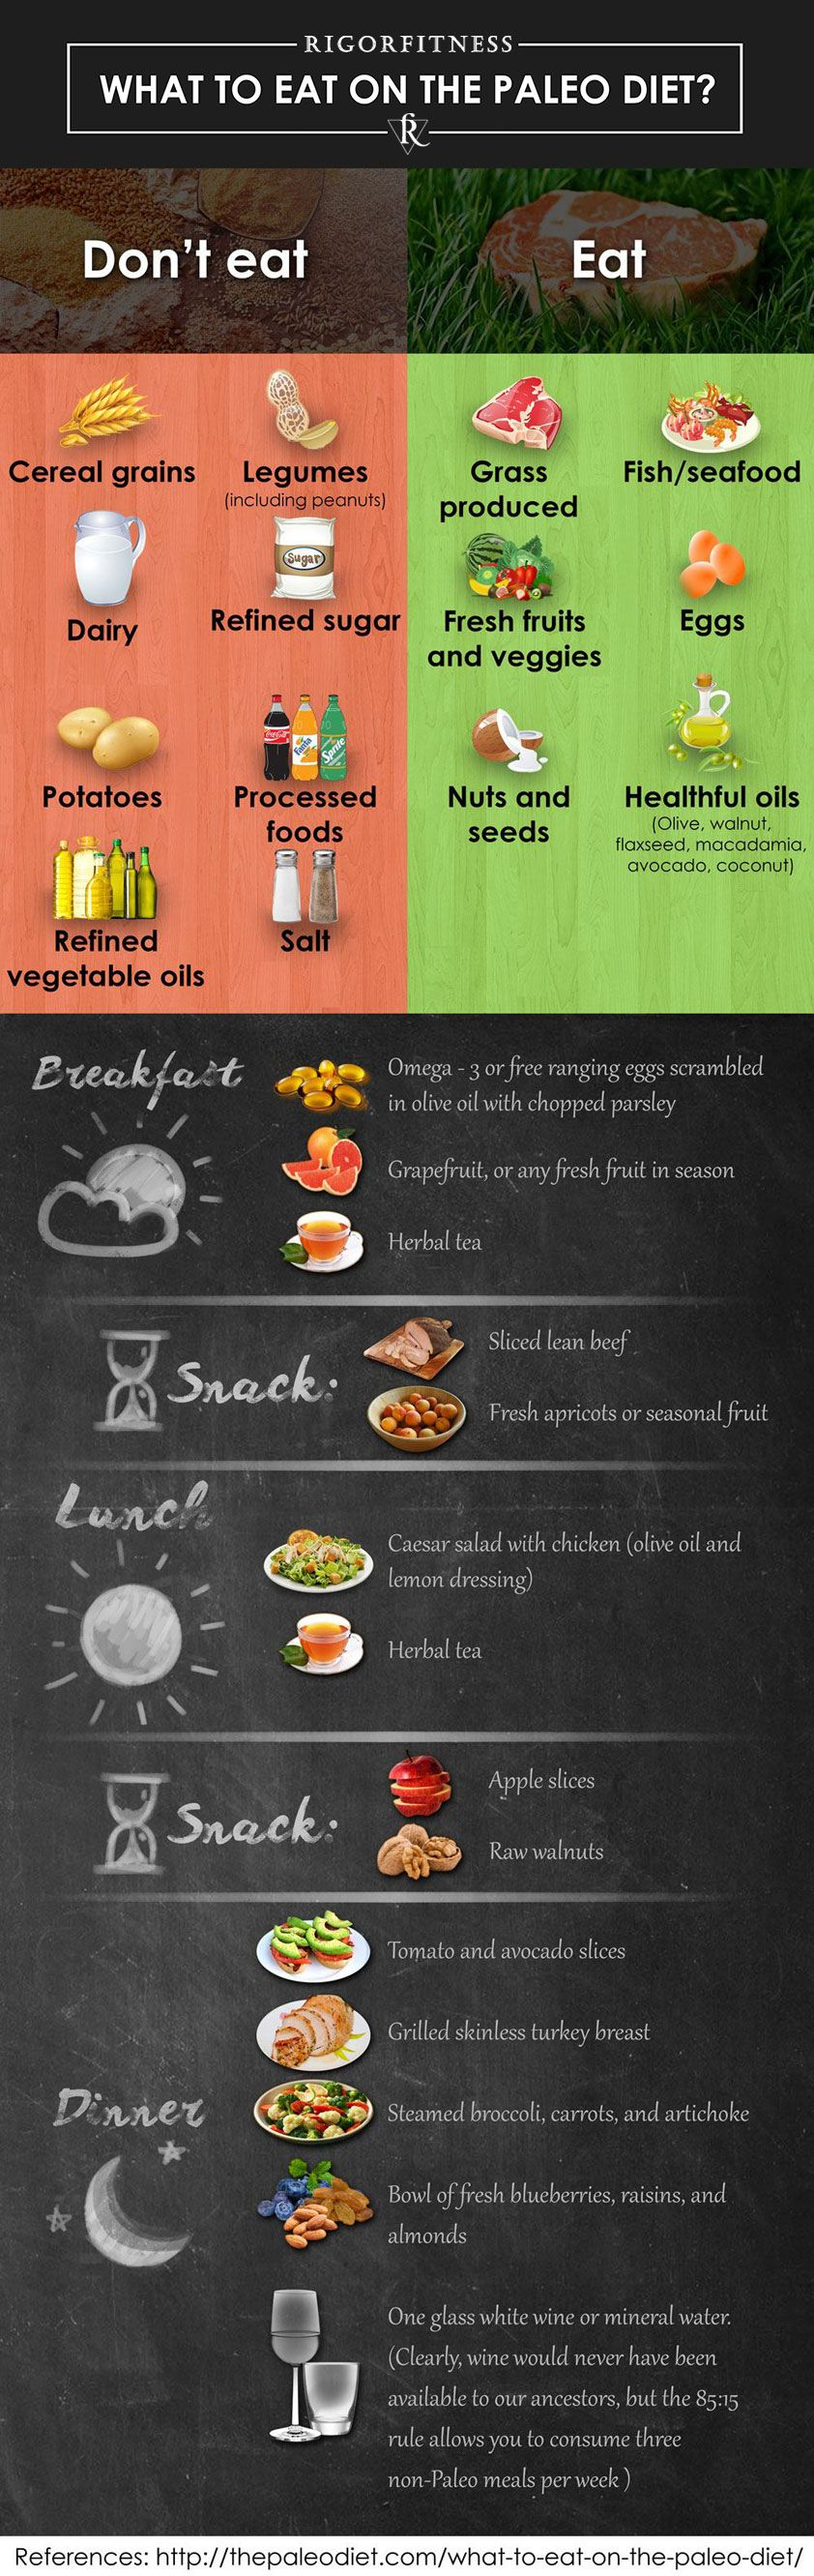 http://rigorfitness.com/what-to-eat-on-the-paleo-diet/